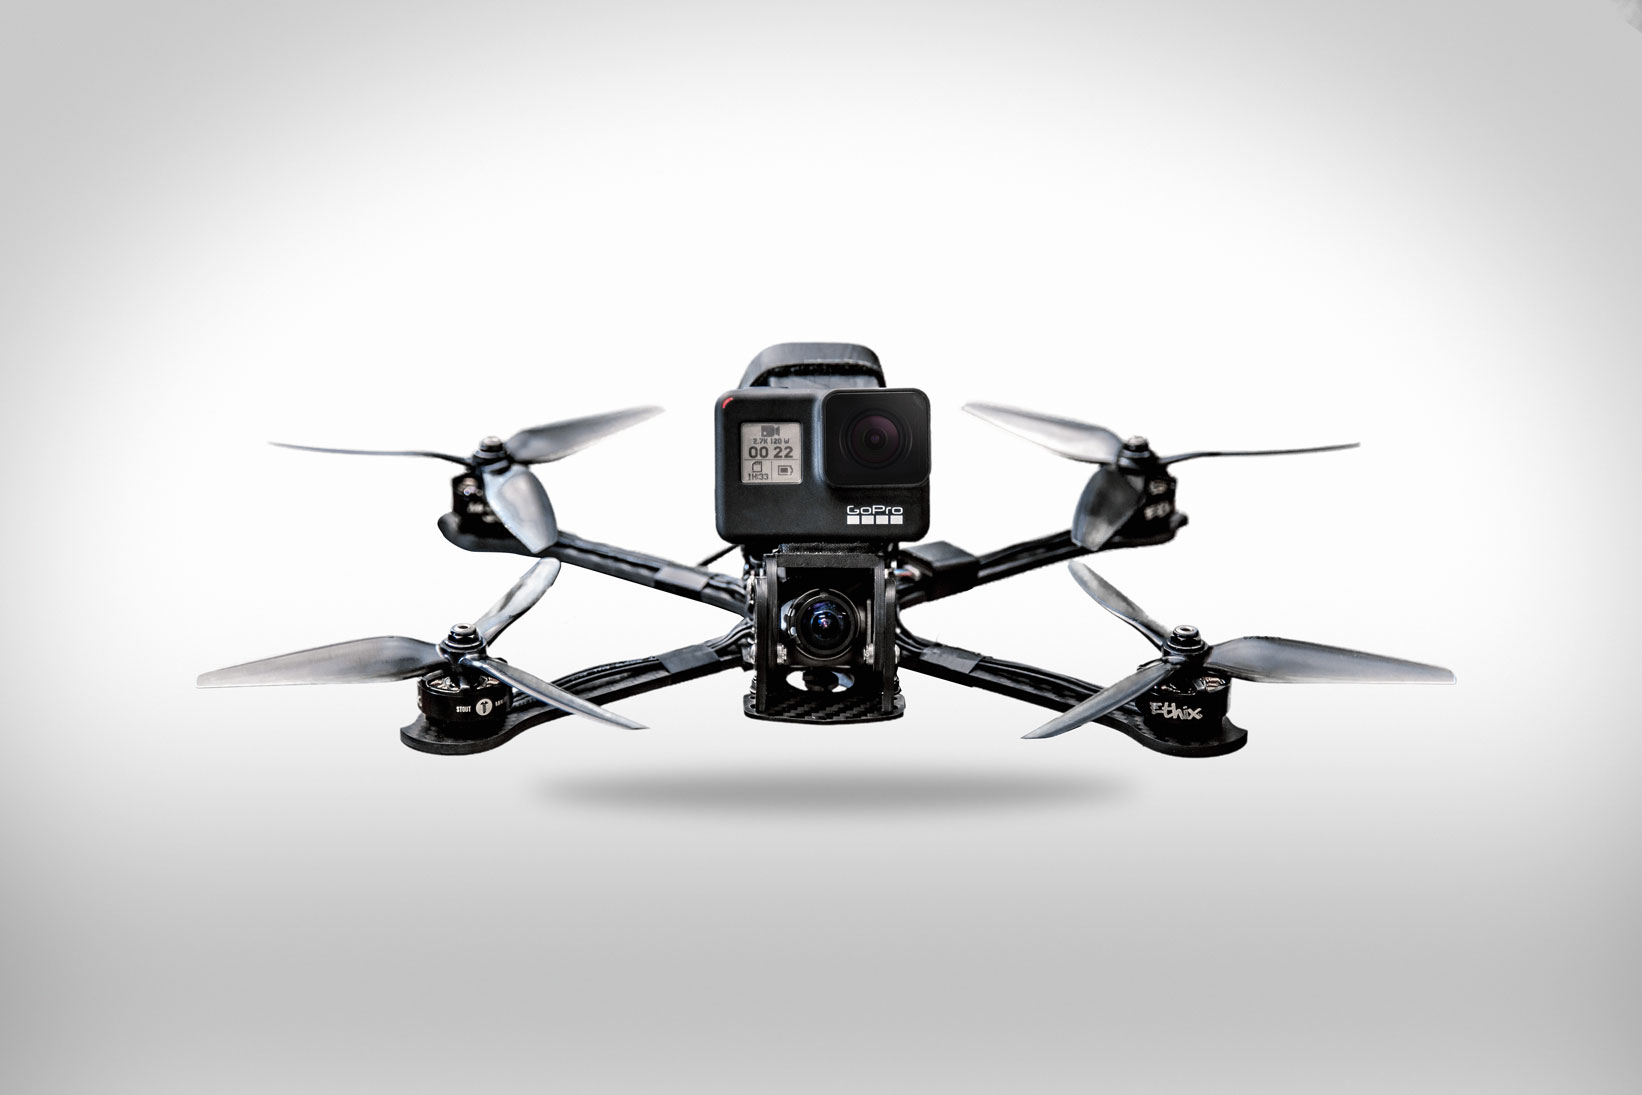 mini drones - These small, high-speed, agile machines are custom built to get impossible shots.